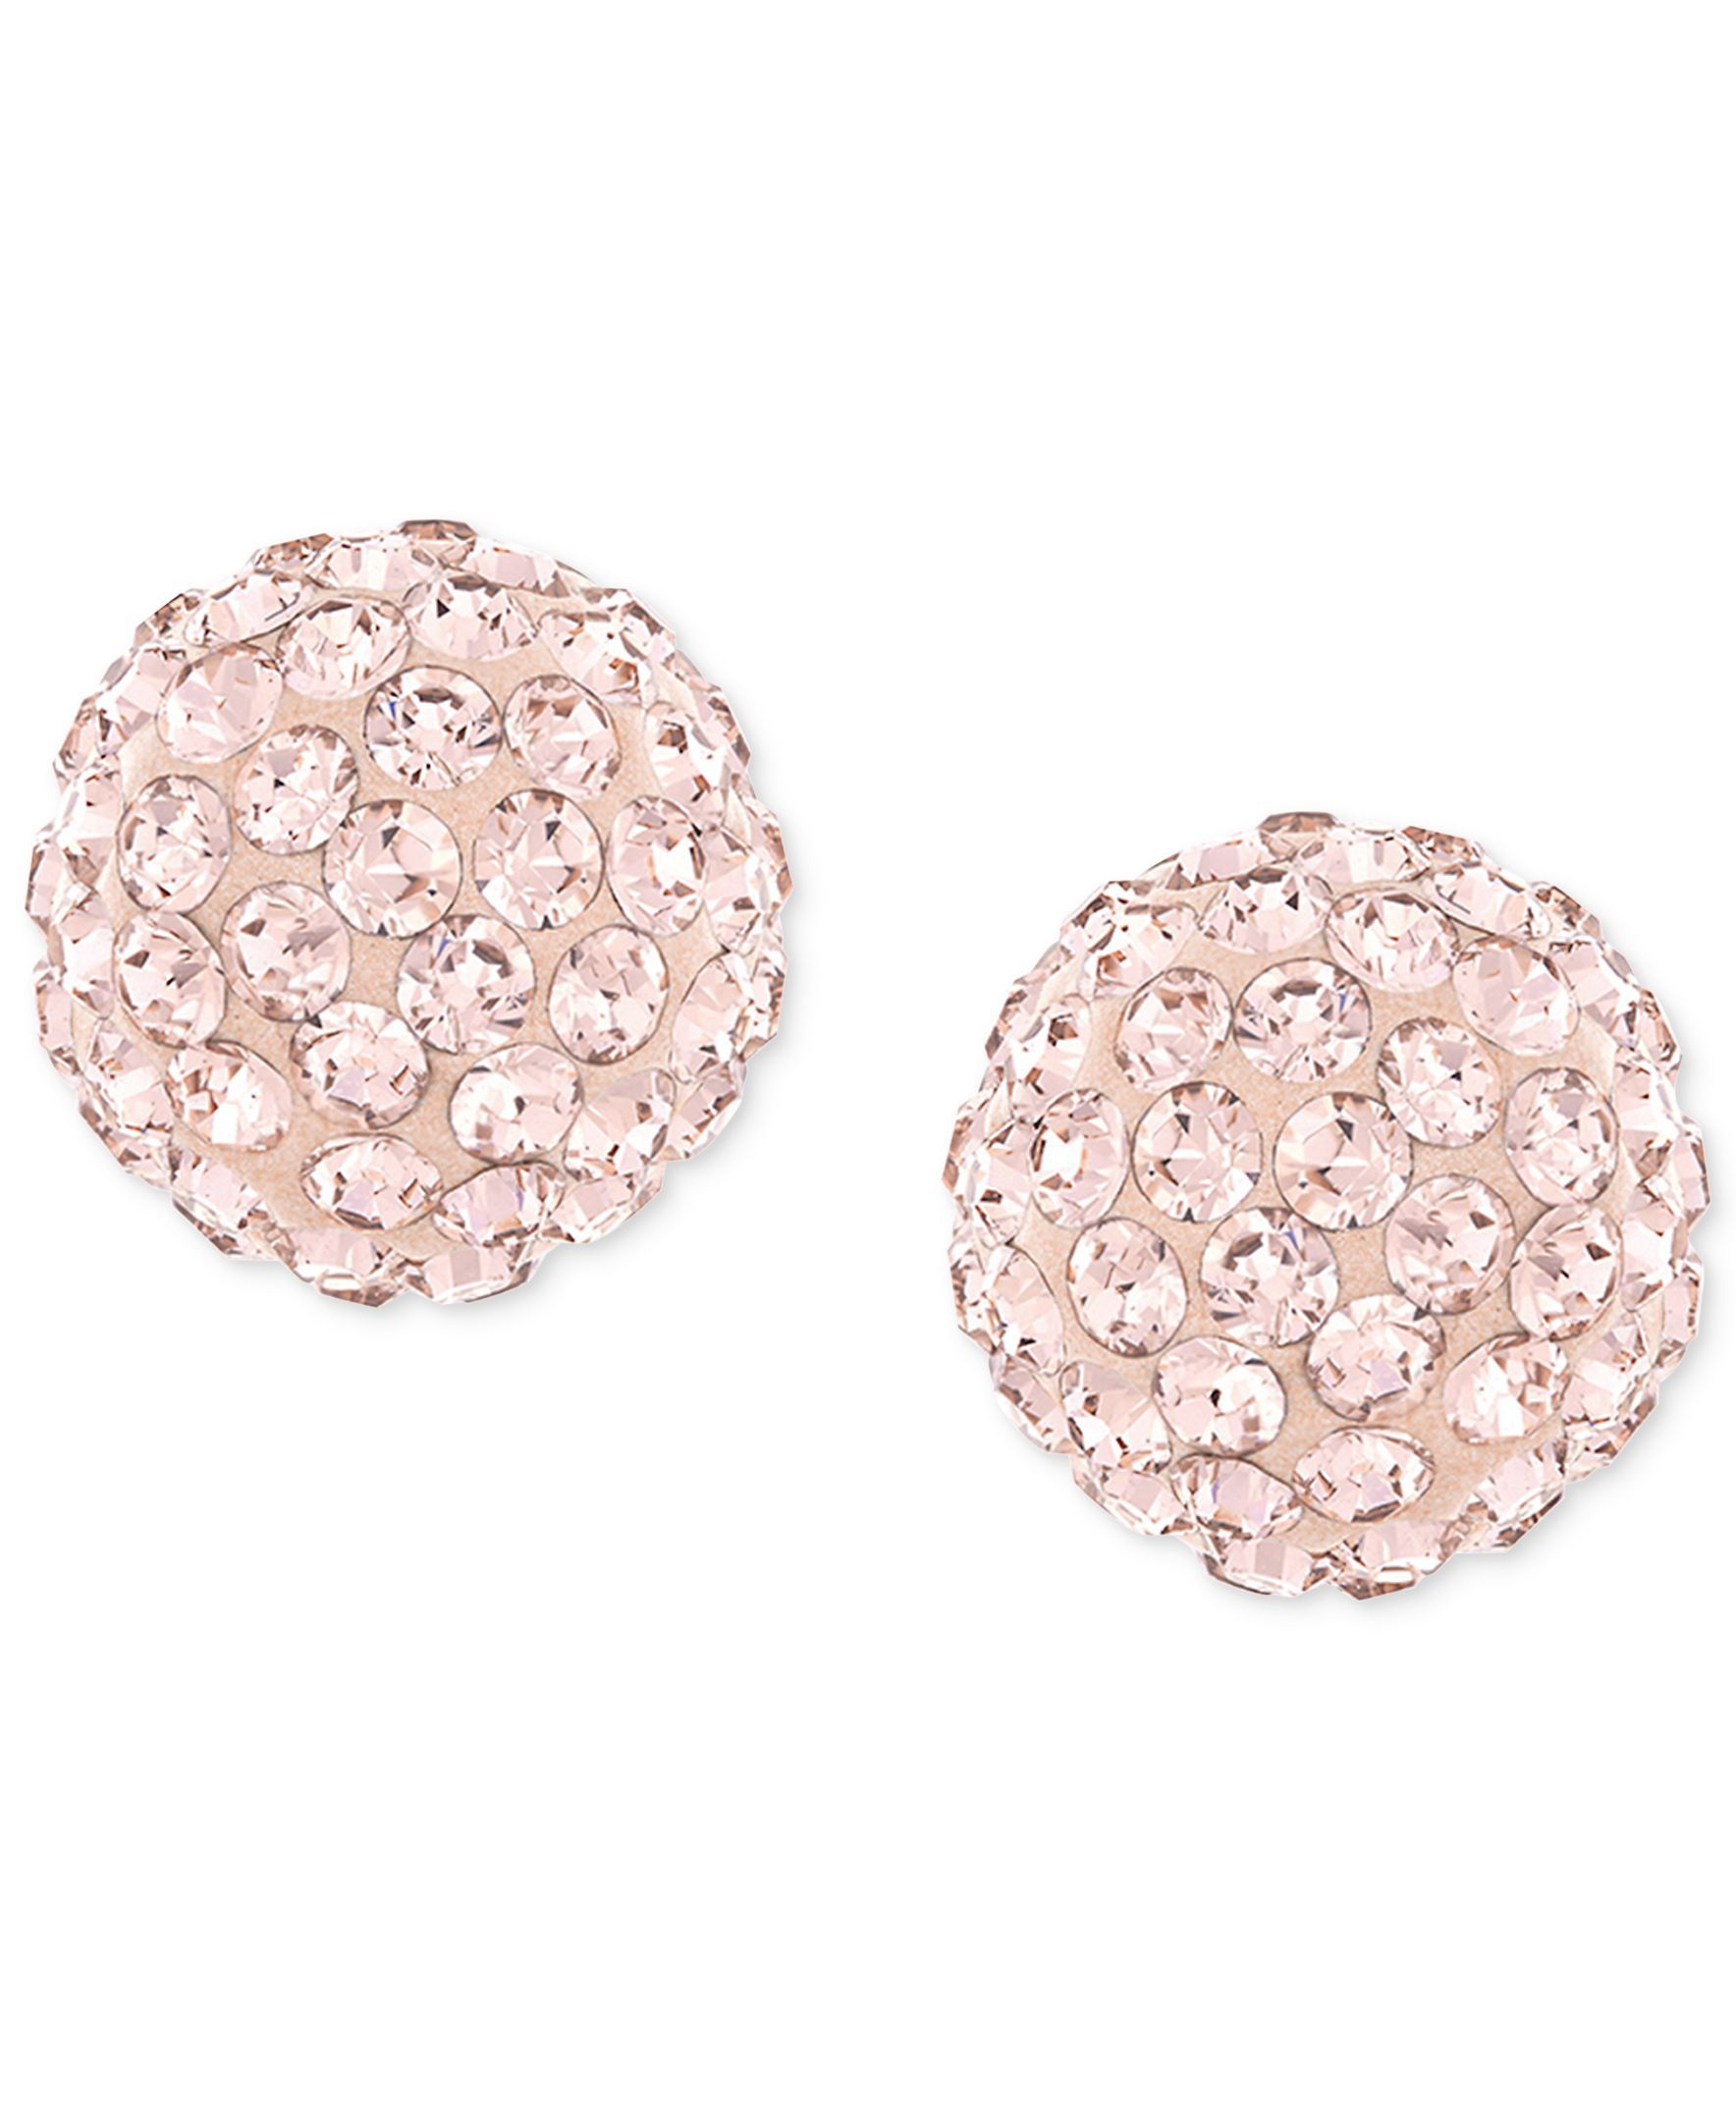 add5e4fc3 Swarovski Rose-Gold-Plated Crystal Stud Earrings | Products | Stud ...